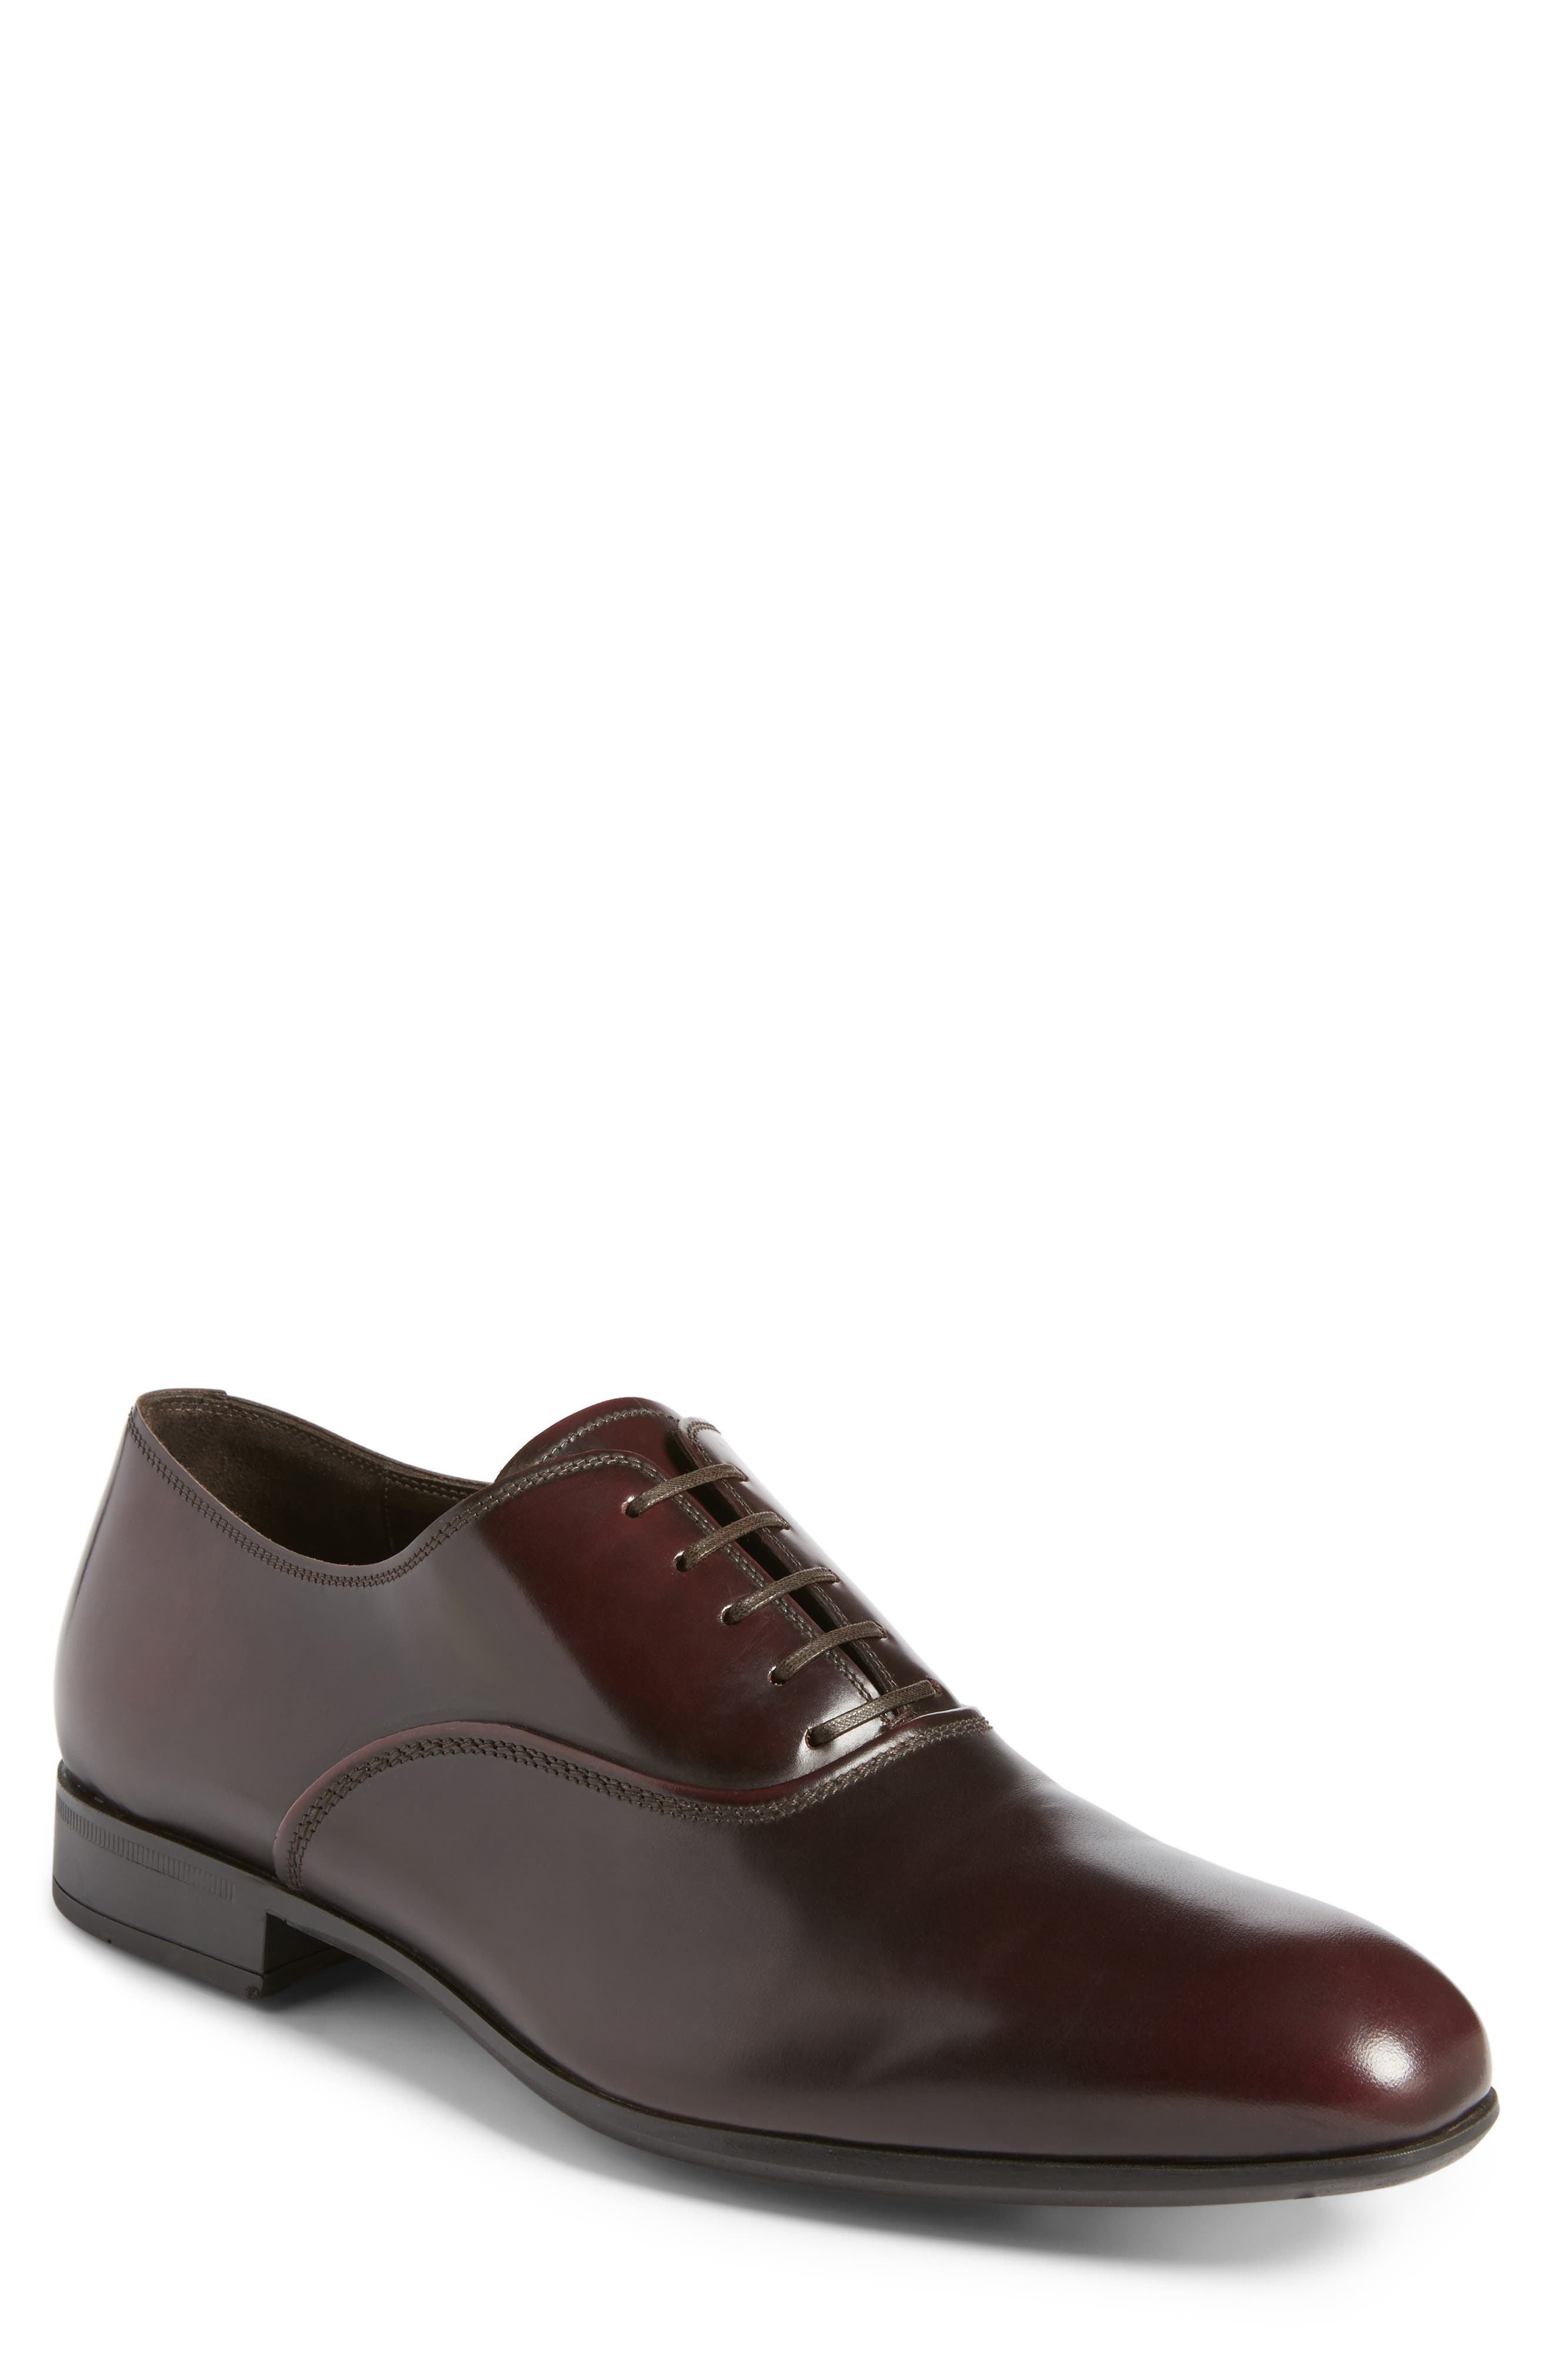 Salvatore Ferragamo Dunn Plain Toe Oxford (Men)